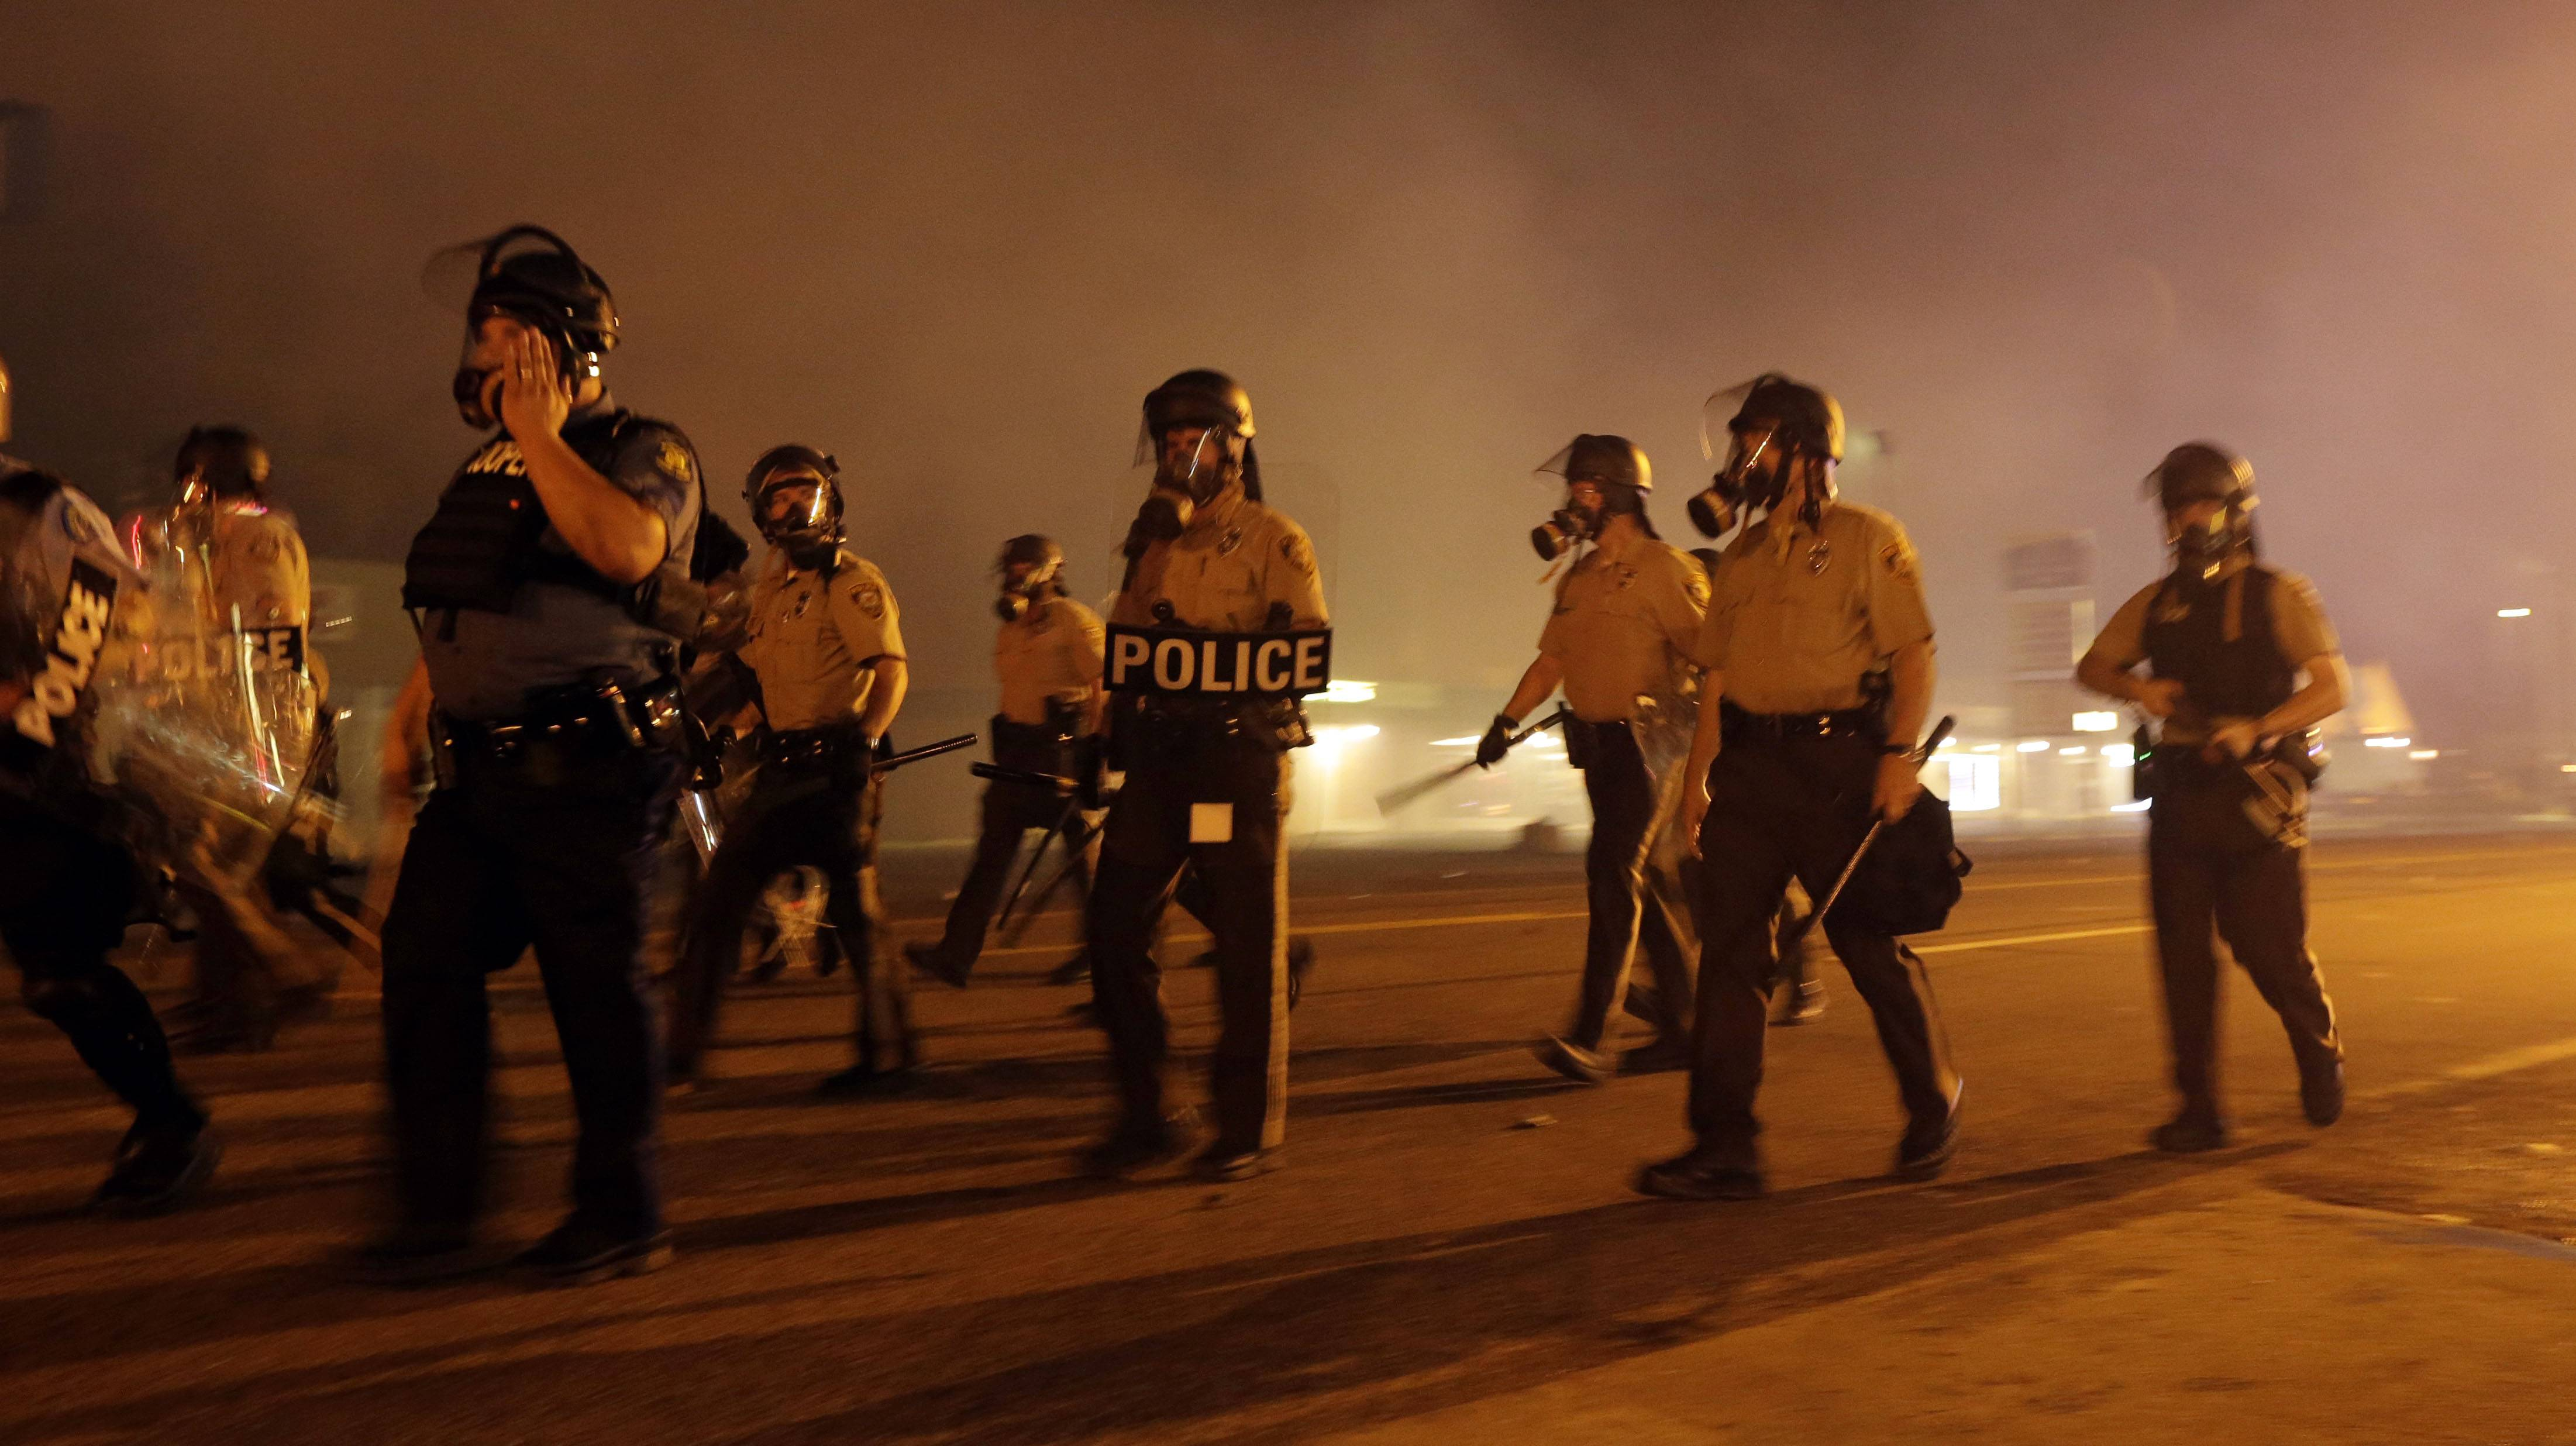 Police, protesters clash ahead of Ferguson curfew